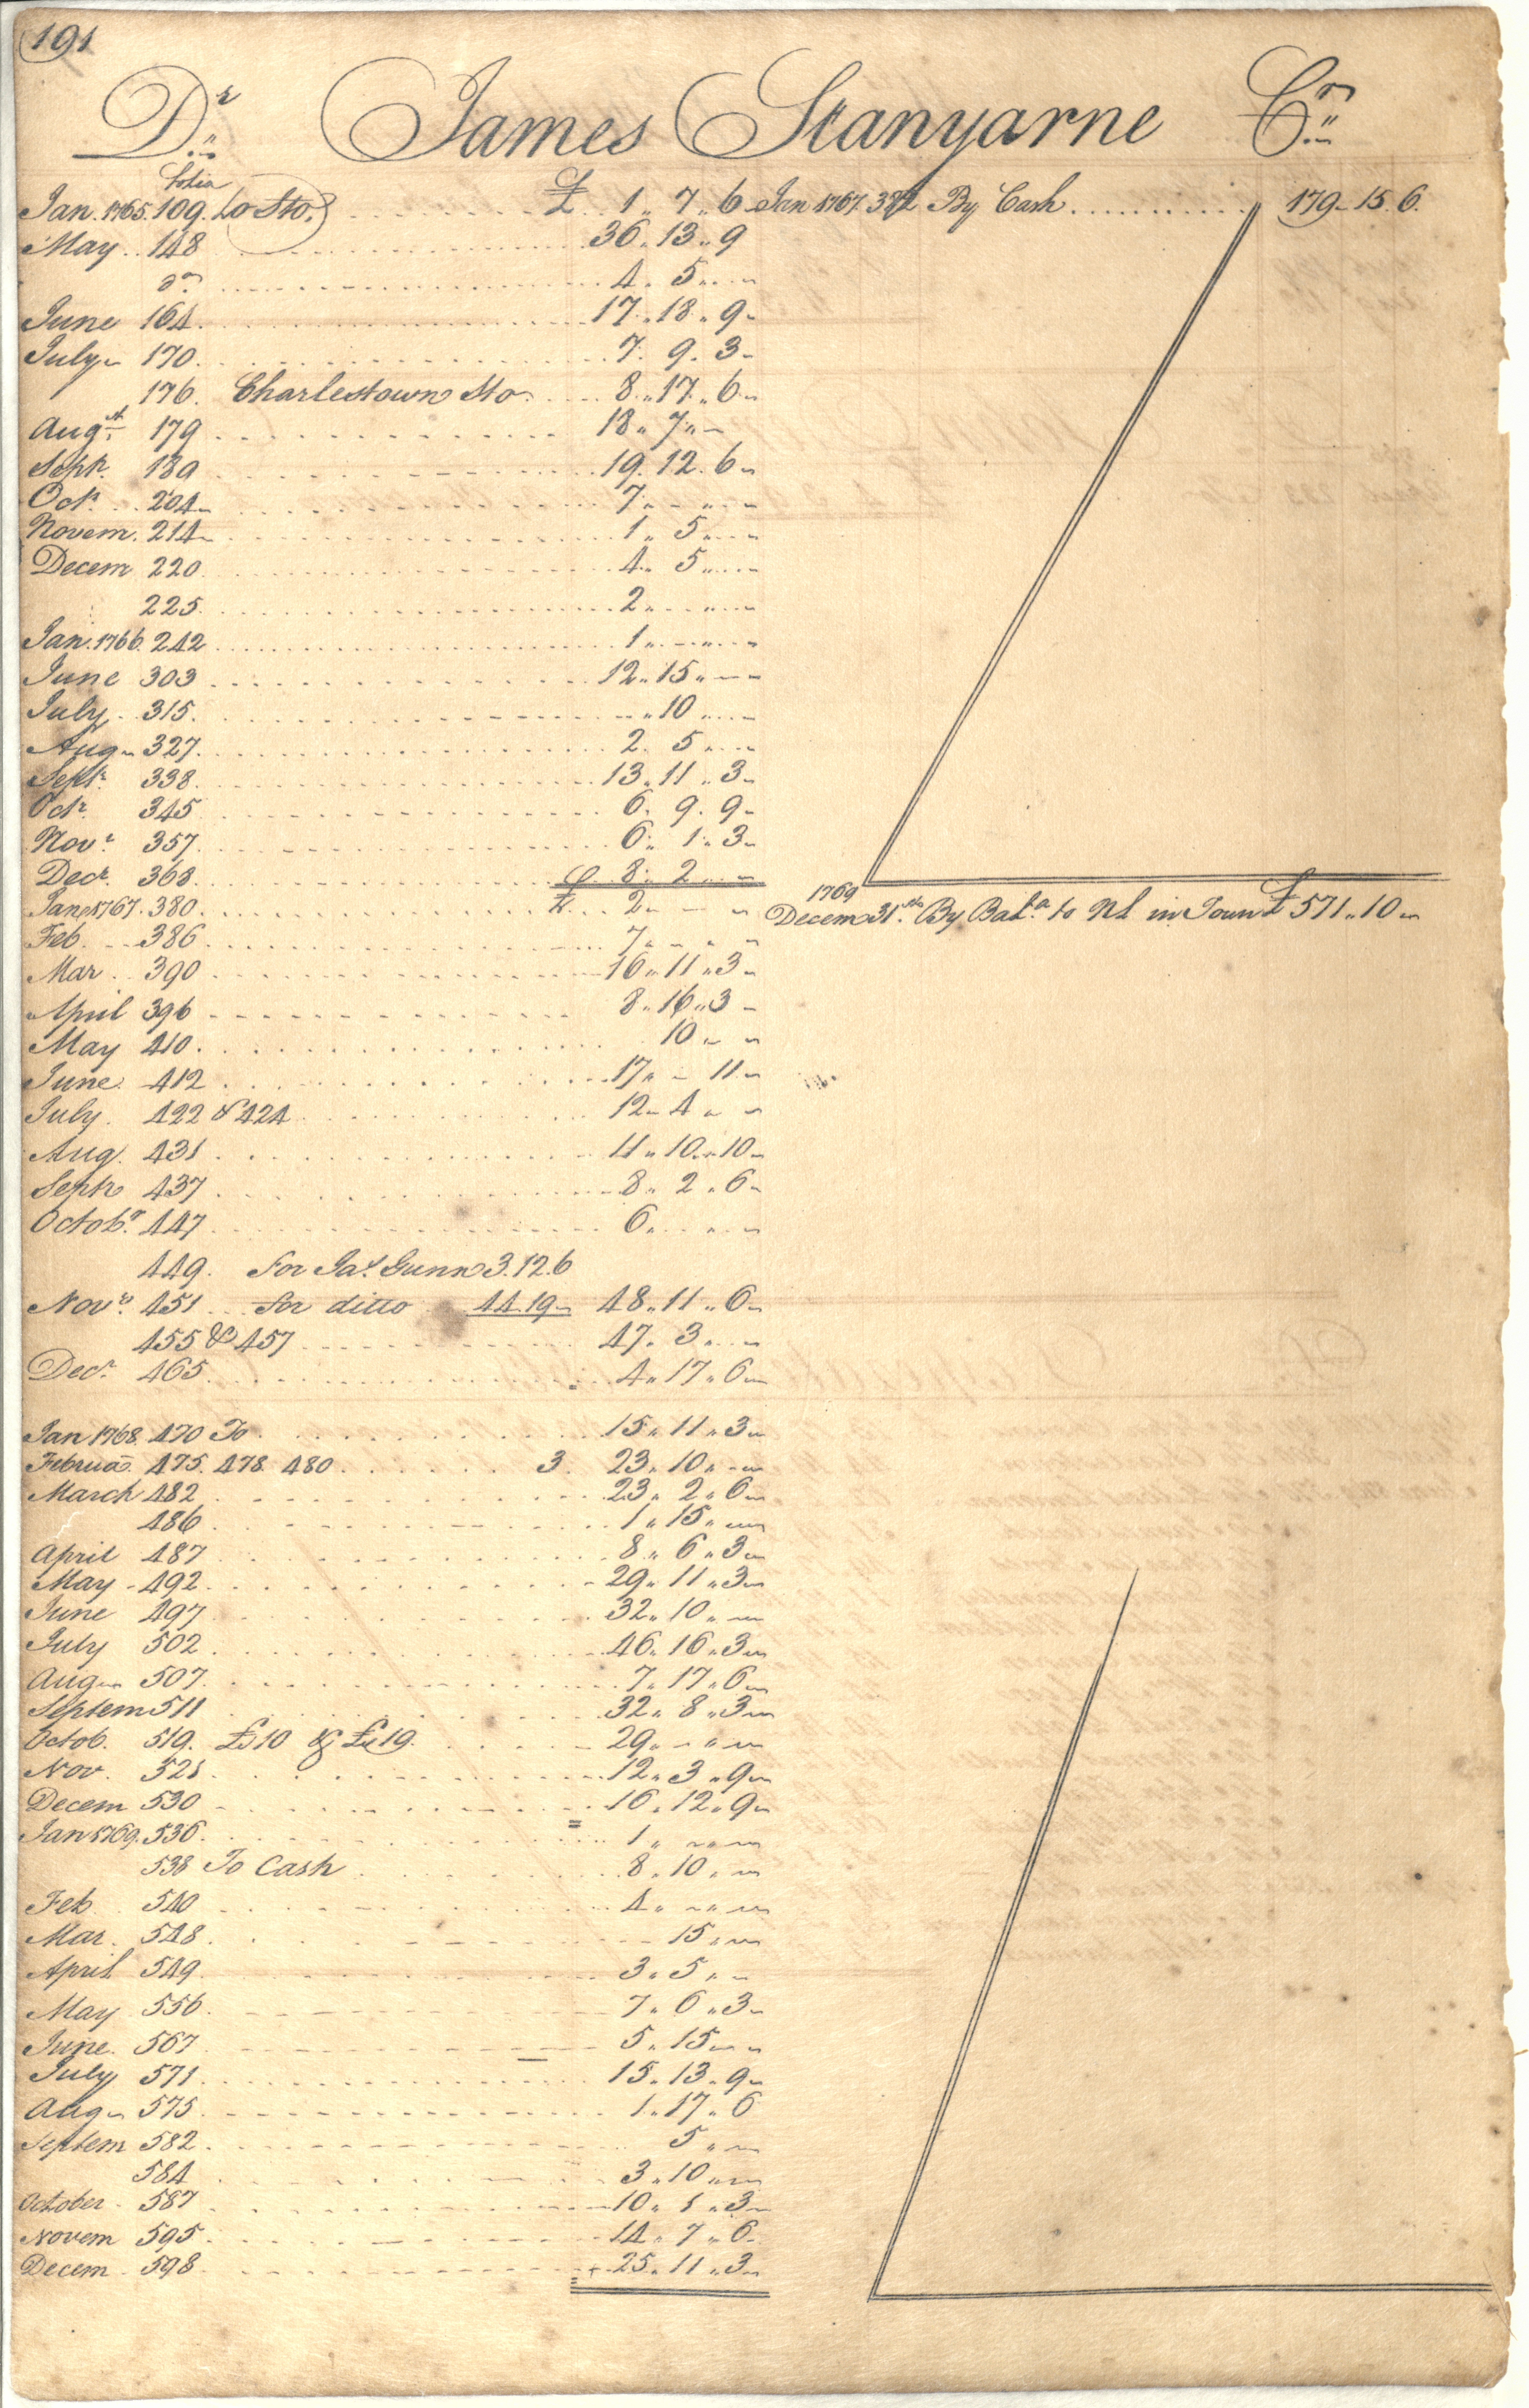 Plowden Weston's Business Ledger, page 191